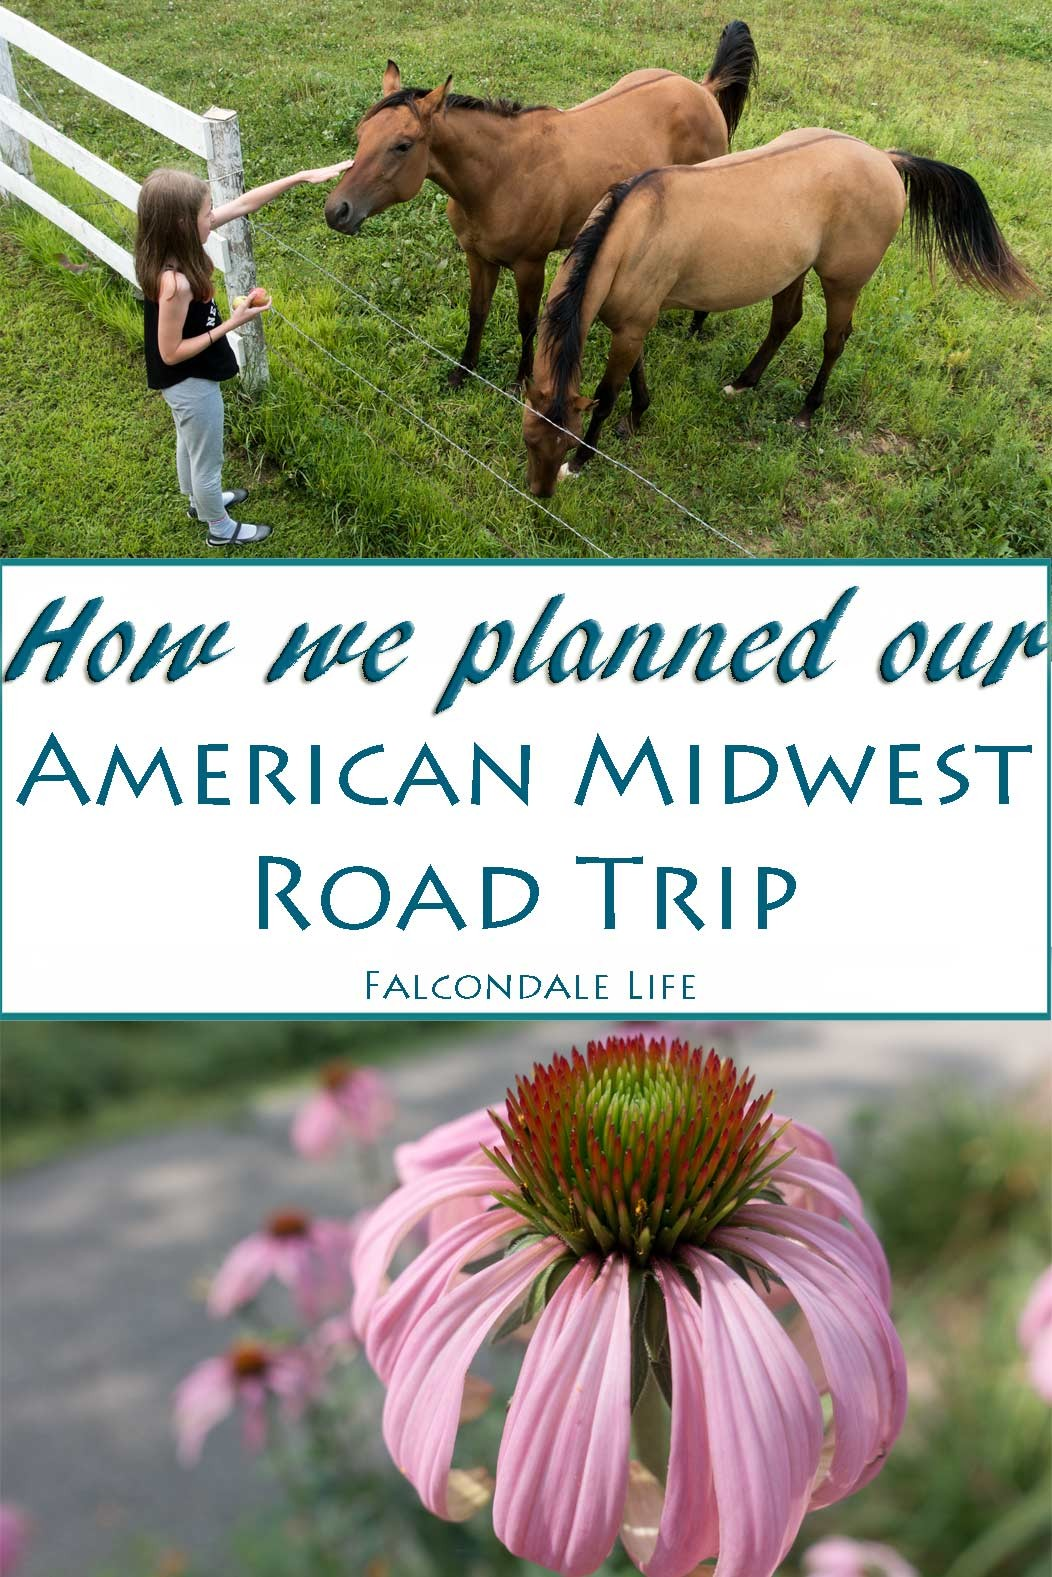 How we planned our American Midwest road trip